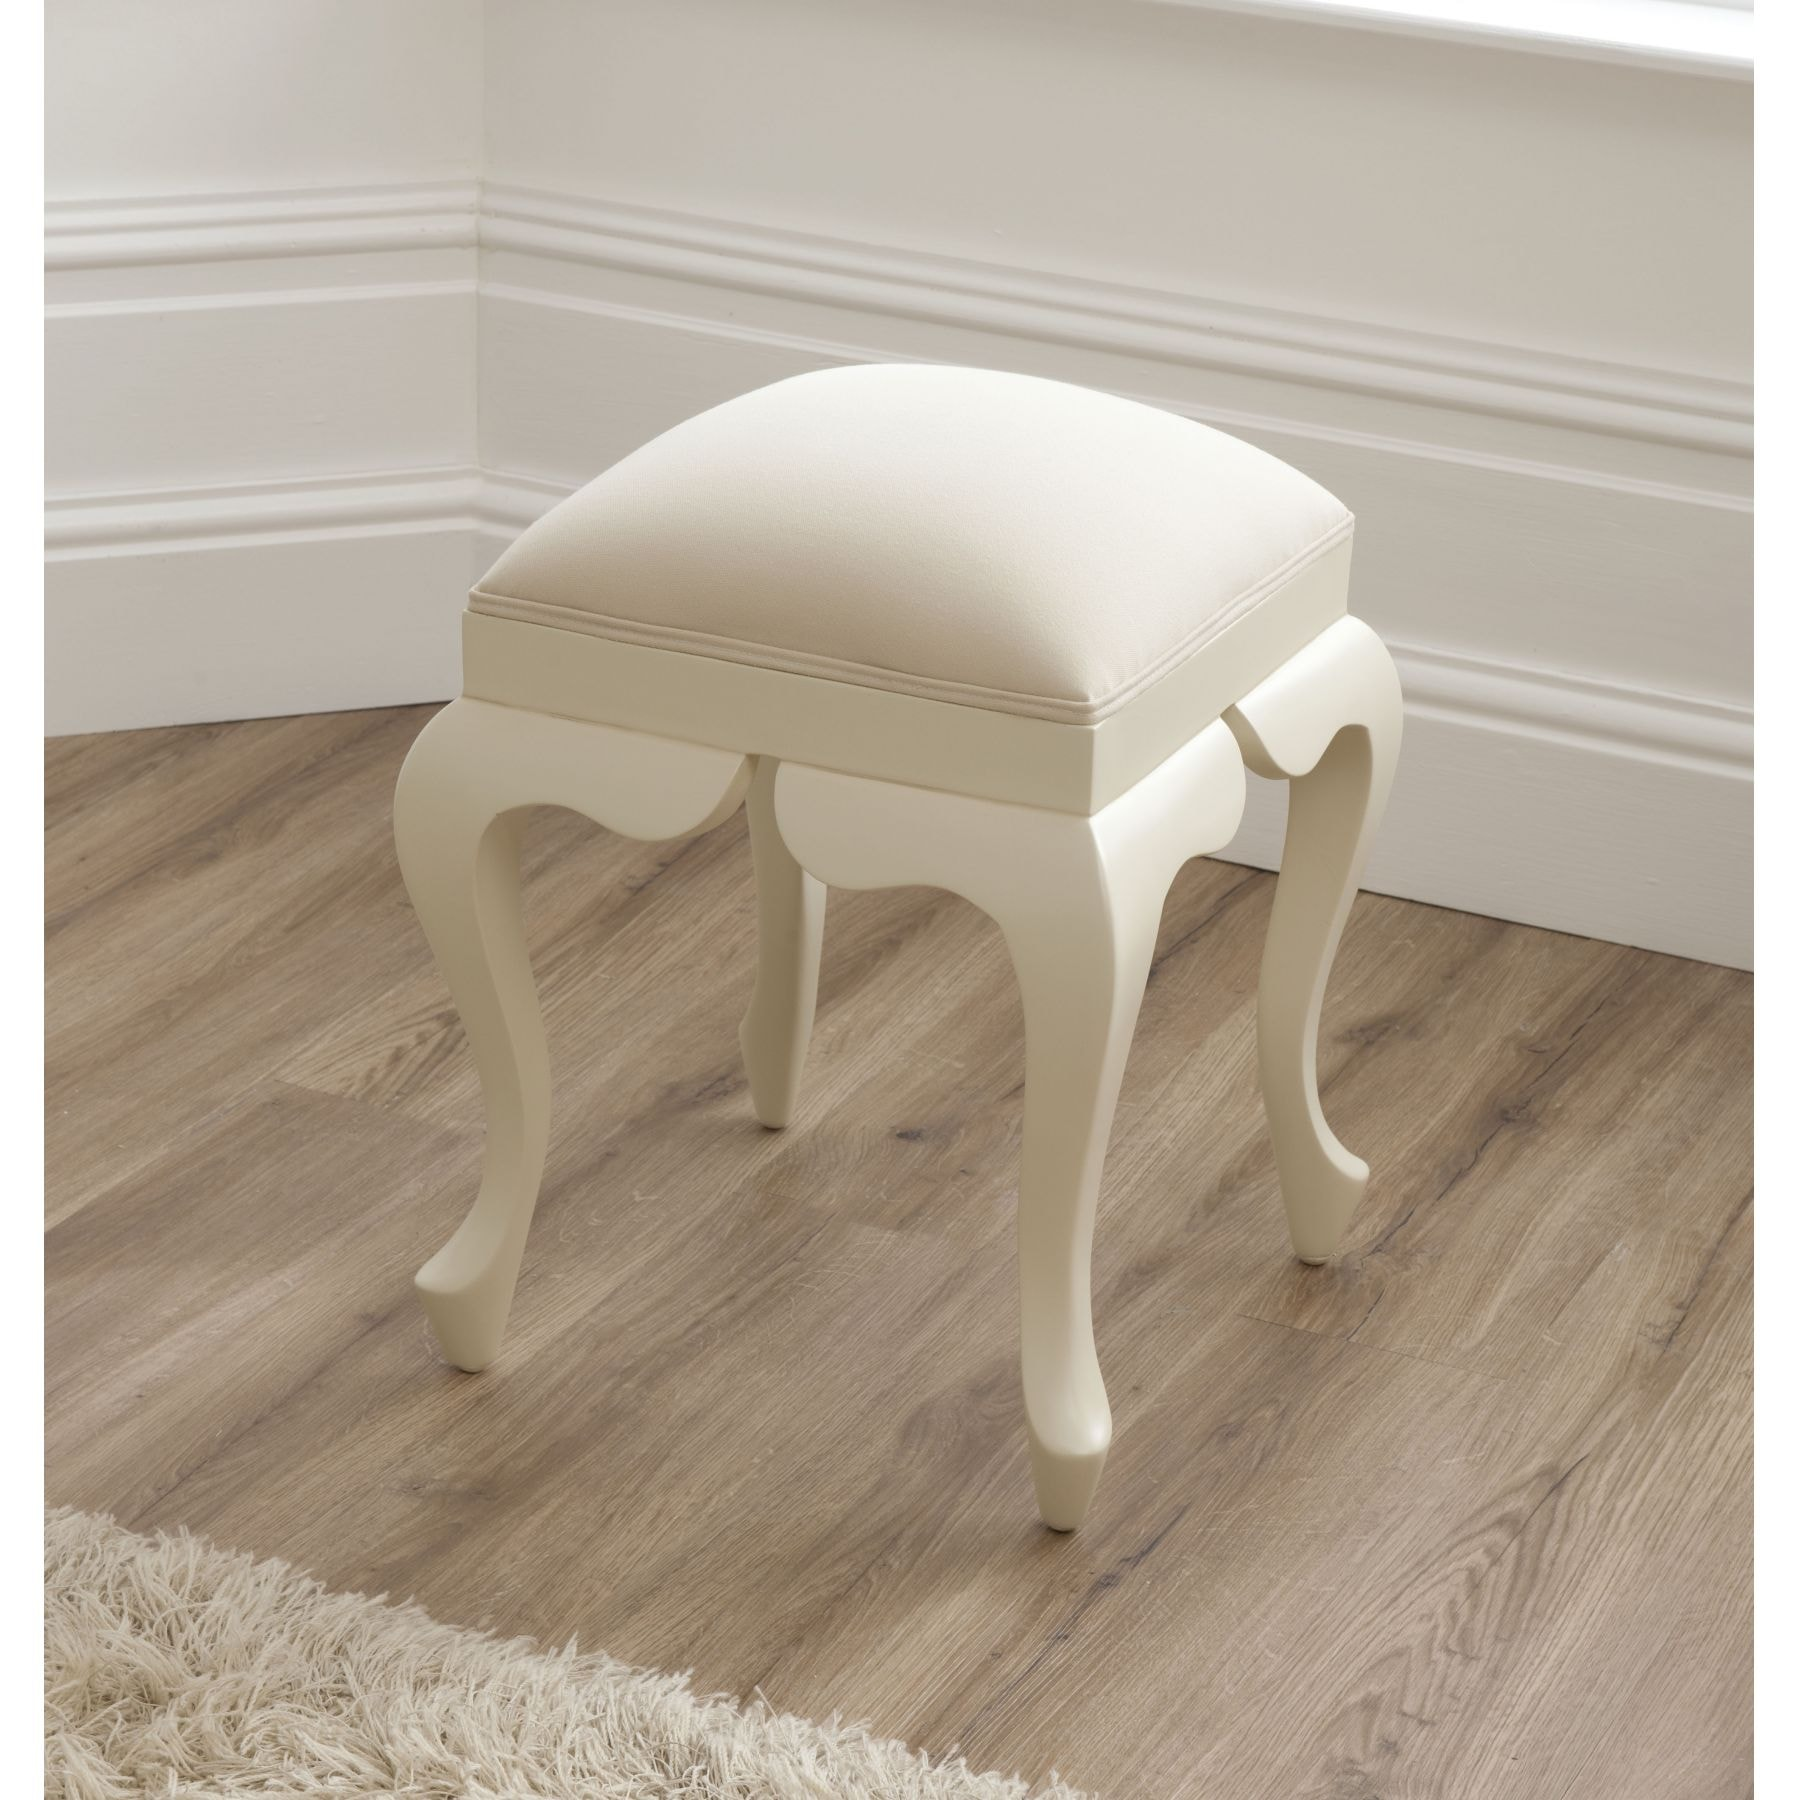 bordeaux ivory shabby chic stool shabby chic furniture. Black Bedroom Furniture Sets. Home Design Ideas